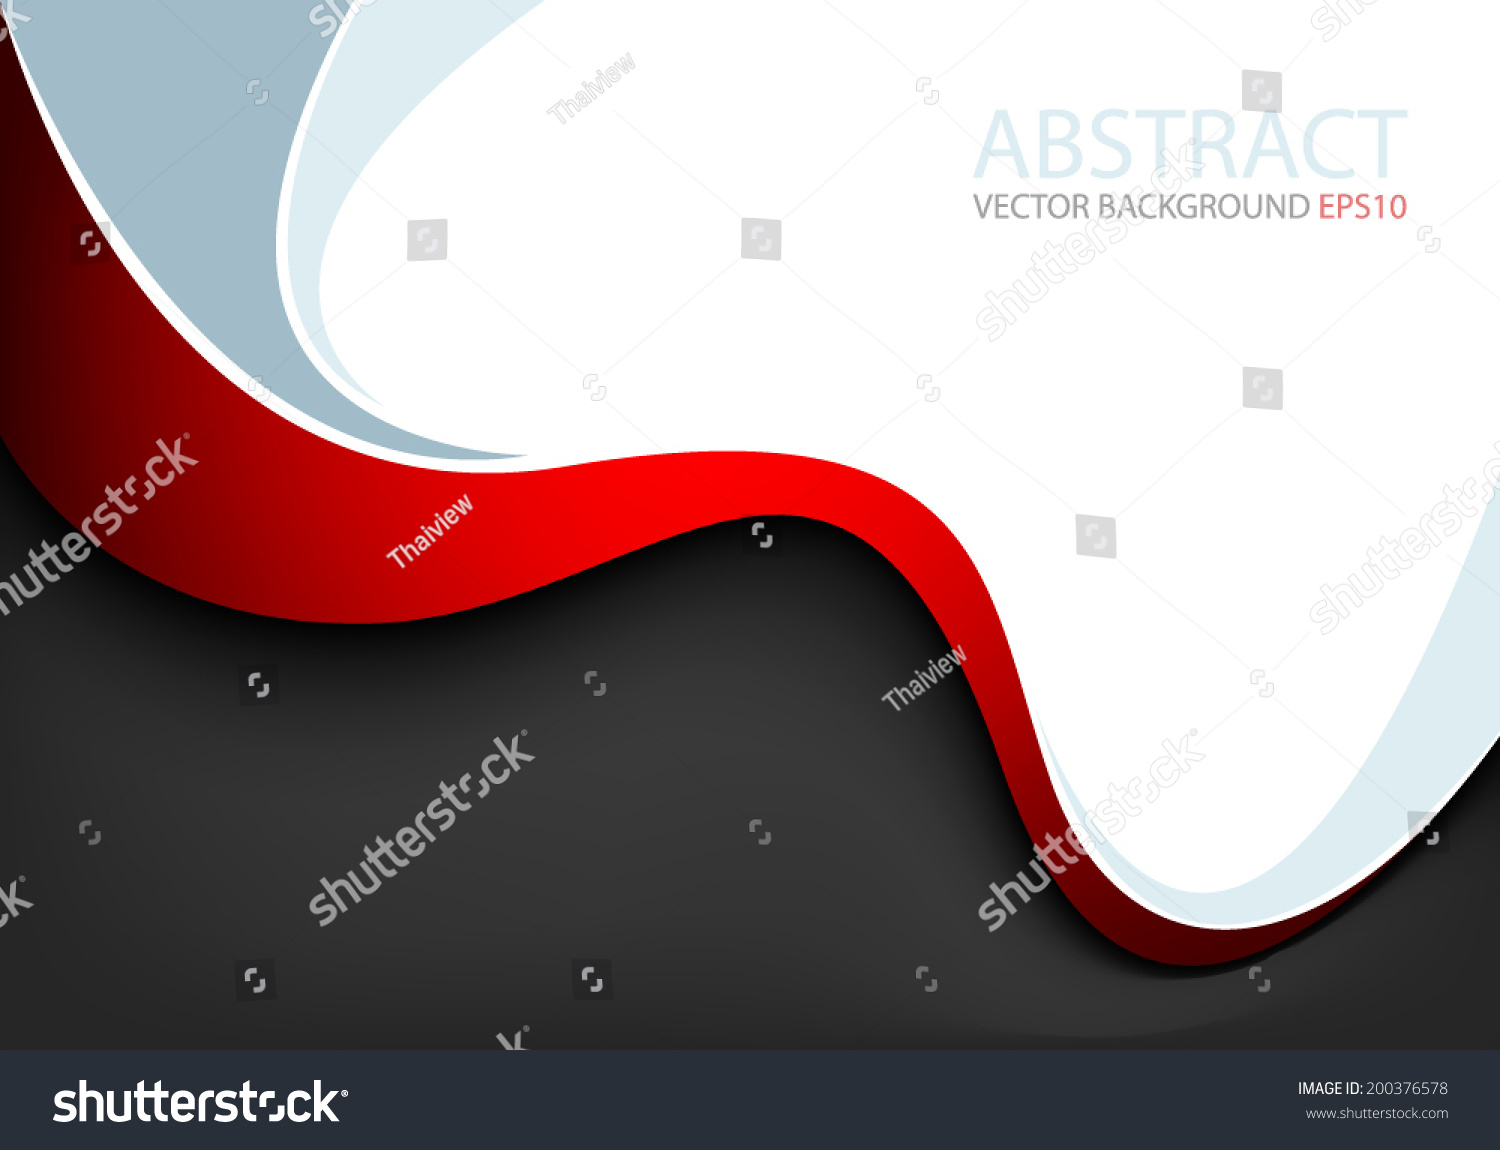 Color Abstract Vector Background Text Frame Stock Vector: Red Line Background On Black And White Color With Blue